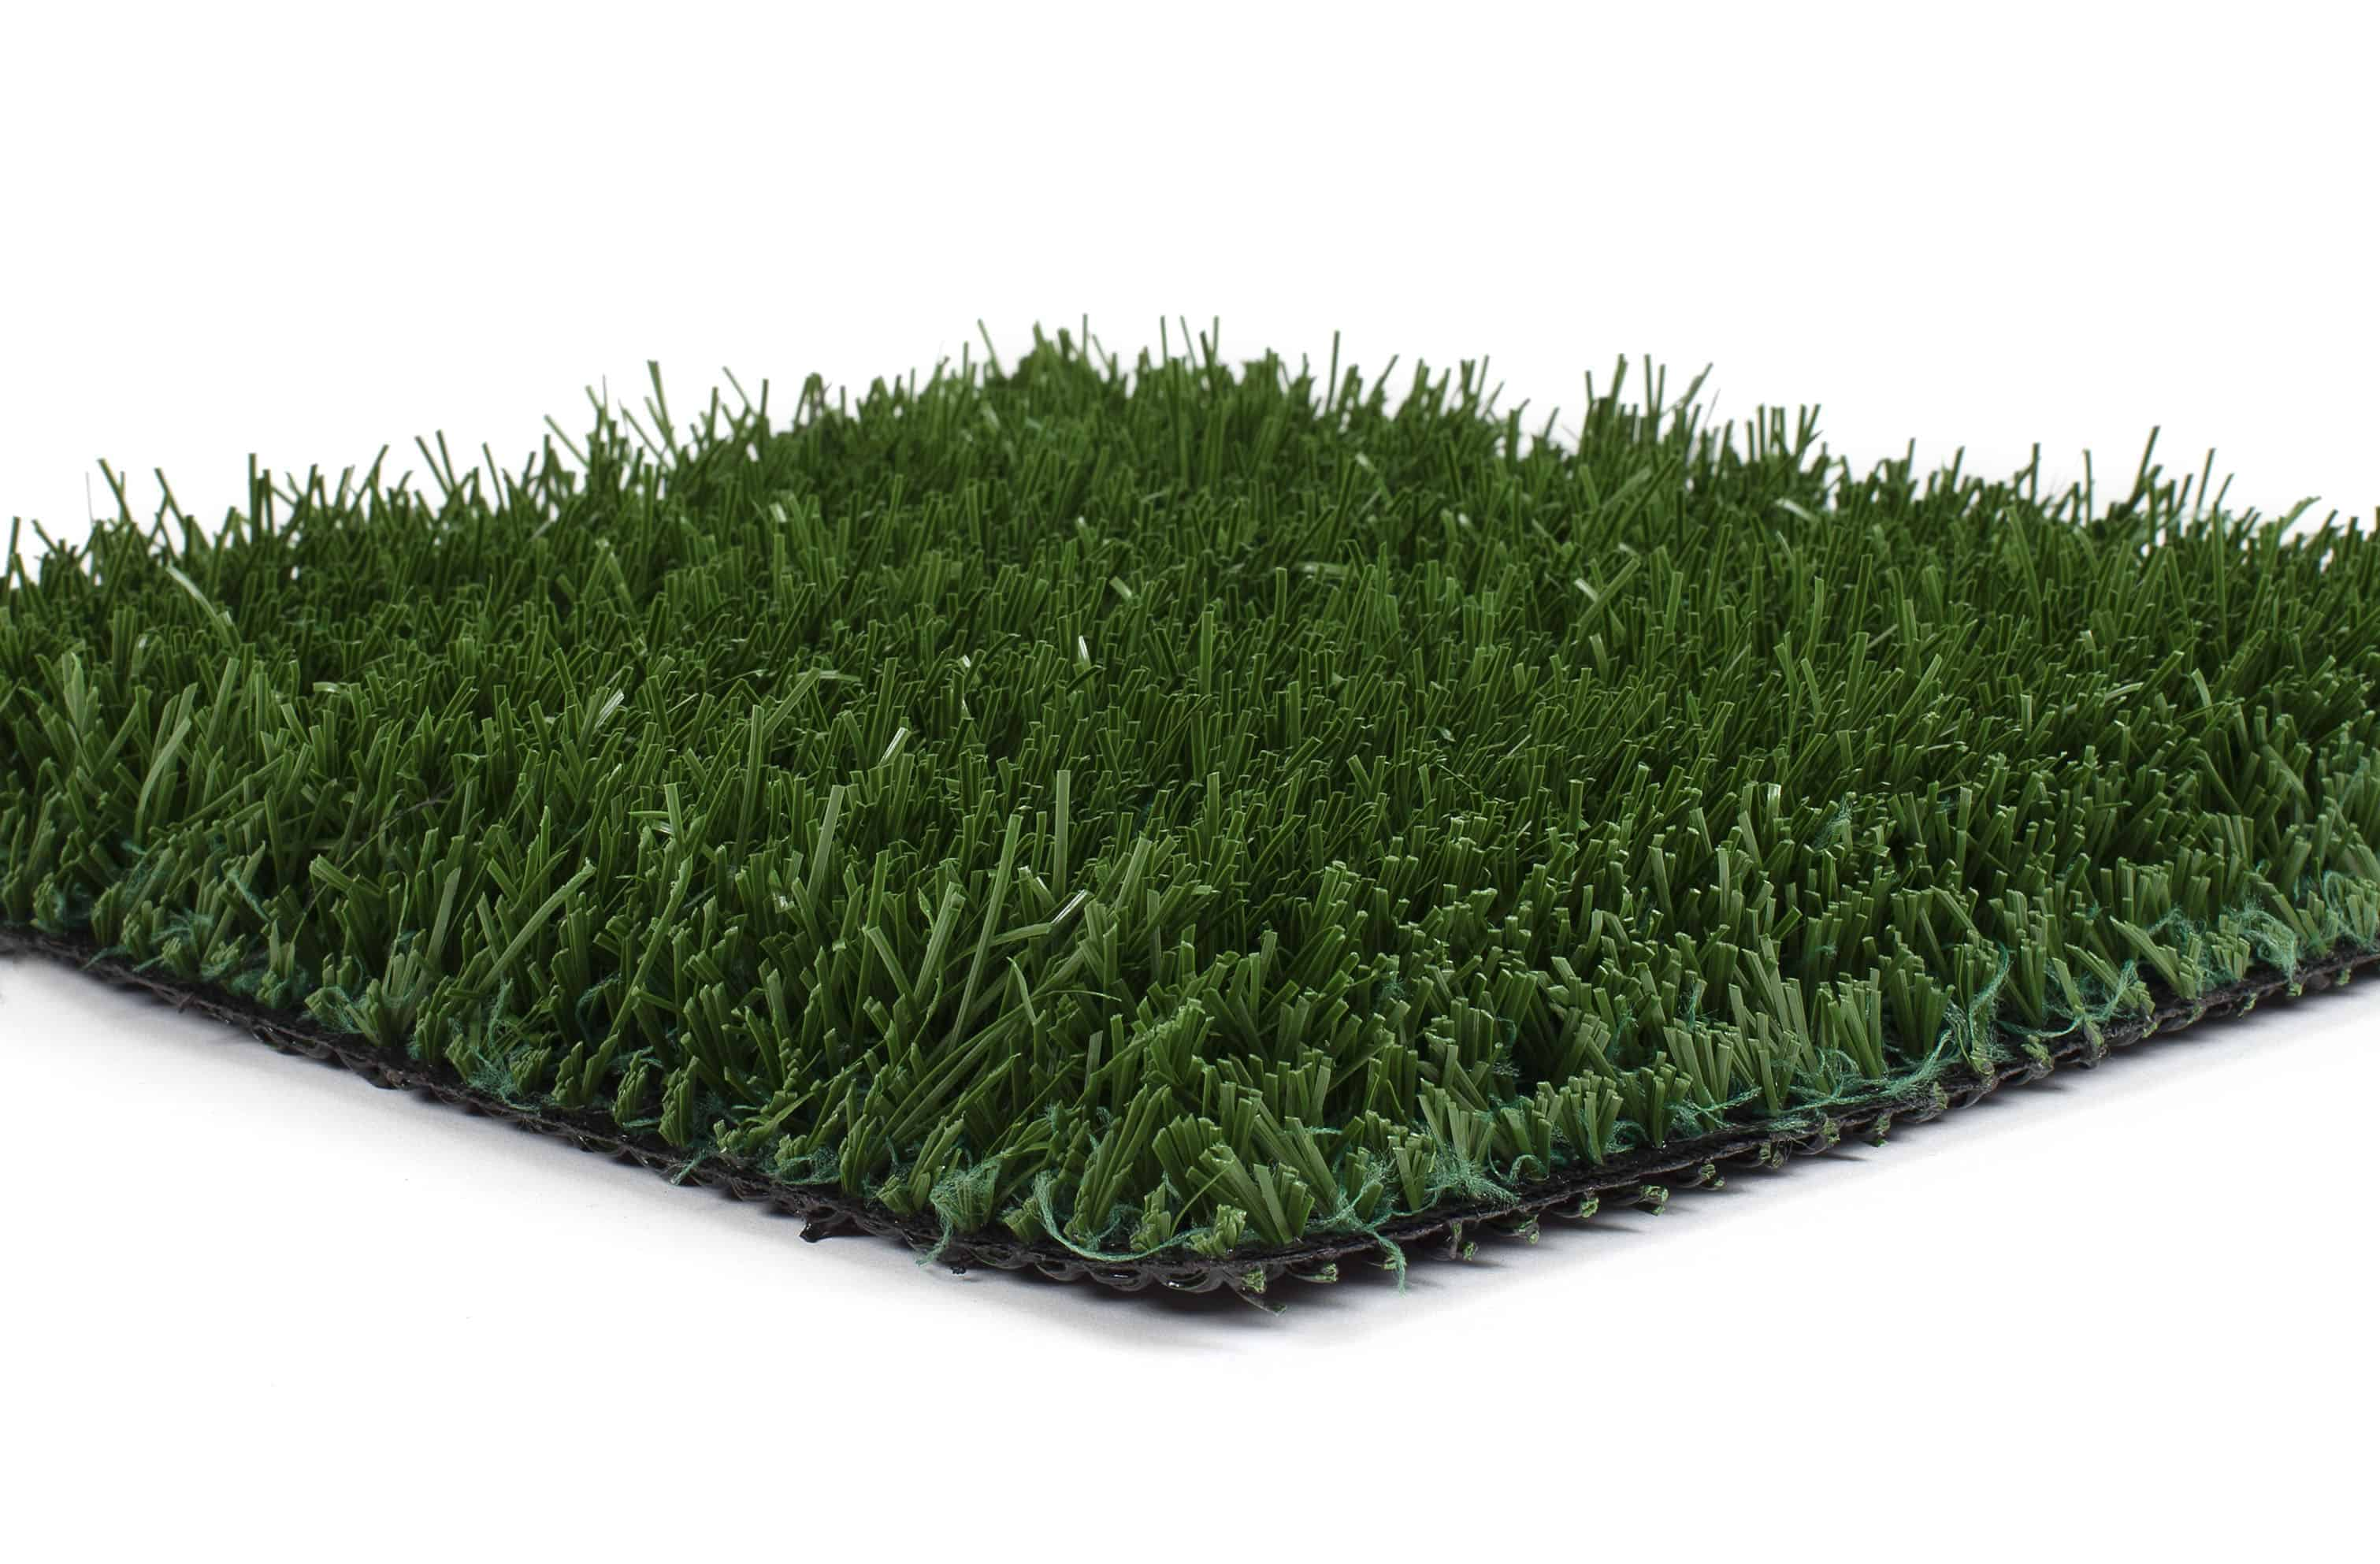 Synthetic Gr Installation How To Install Artificial Easyturf